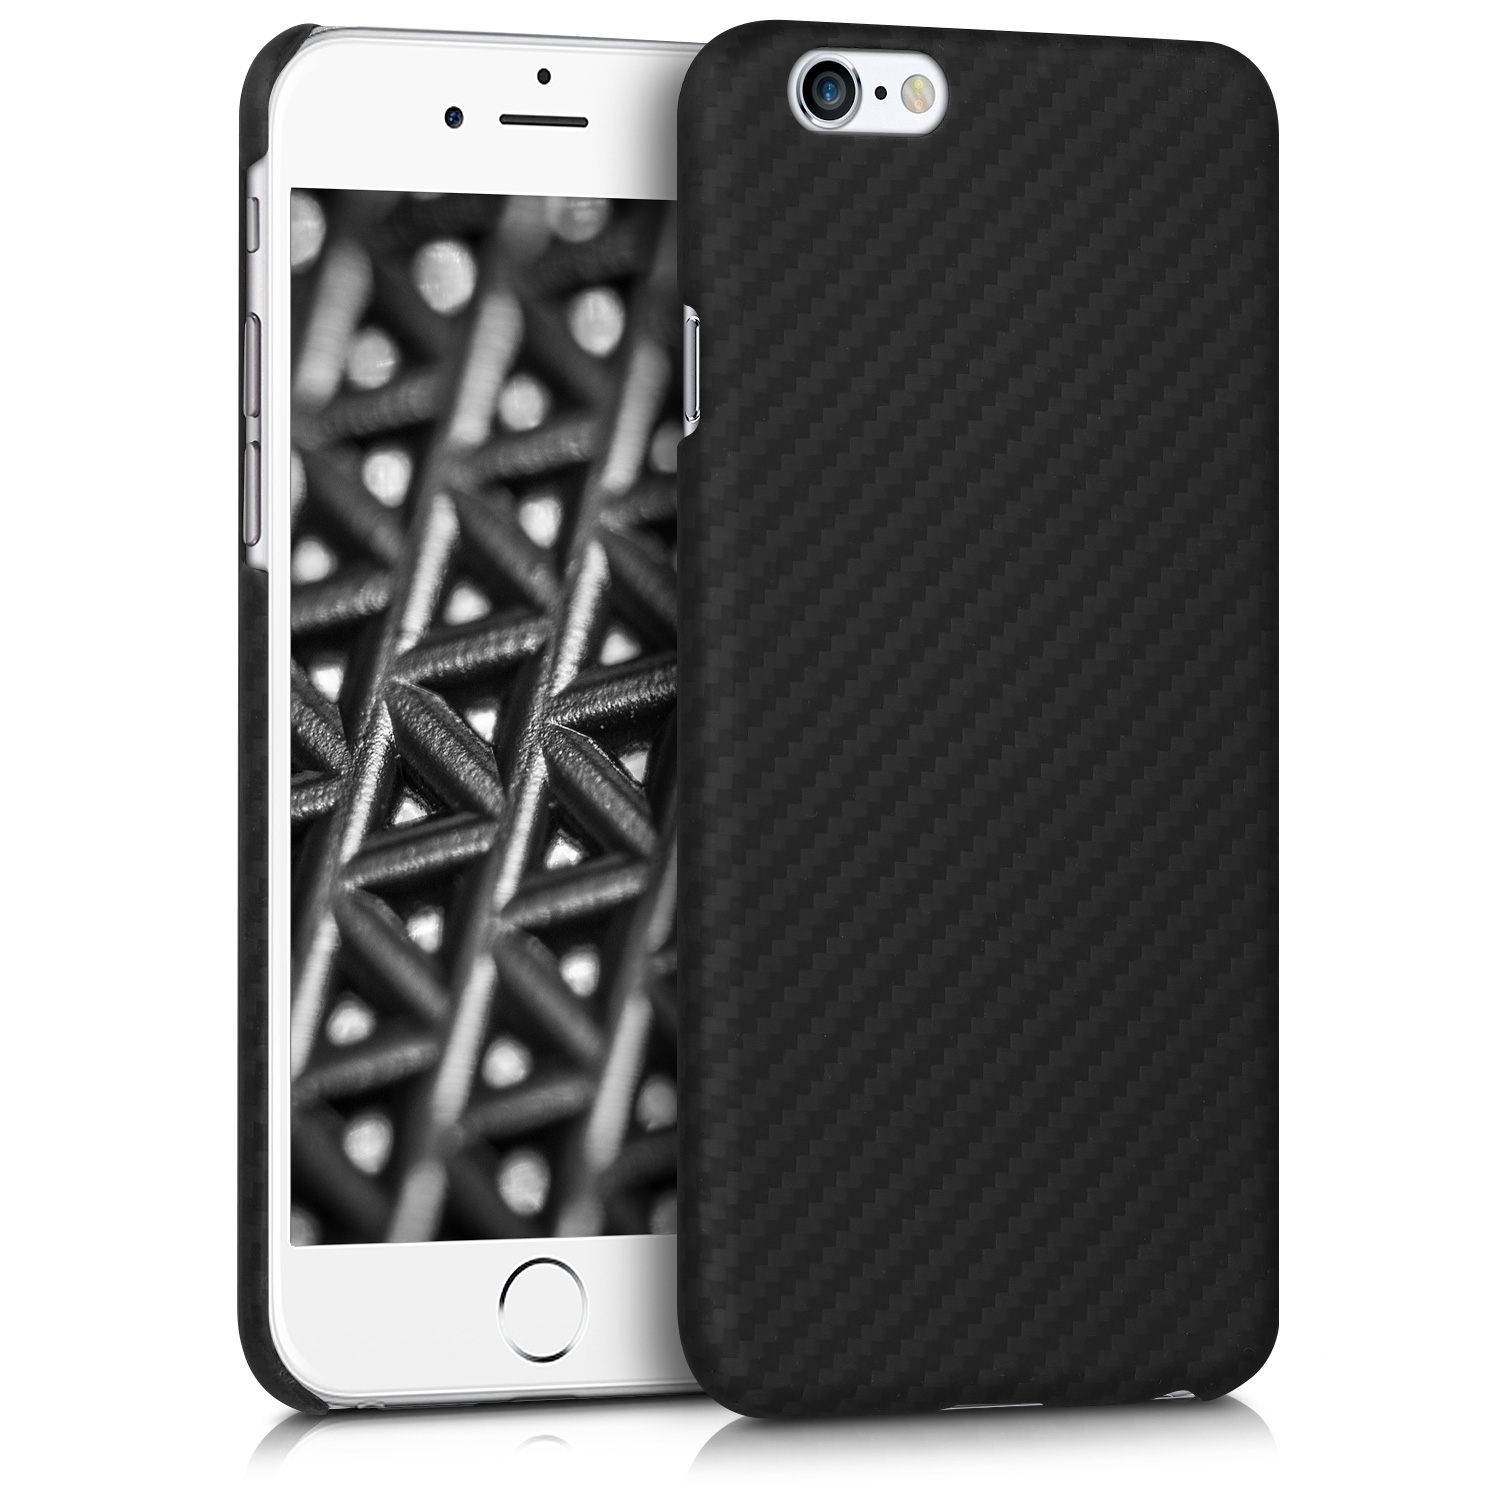 Kalibri Aramid Fiber Body - Σκληρή Θήκη iPhone 6 / 6S - Black Matte (43110.01)